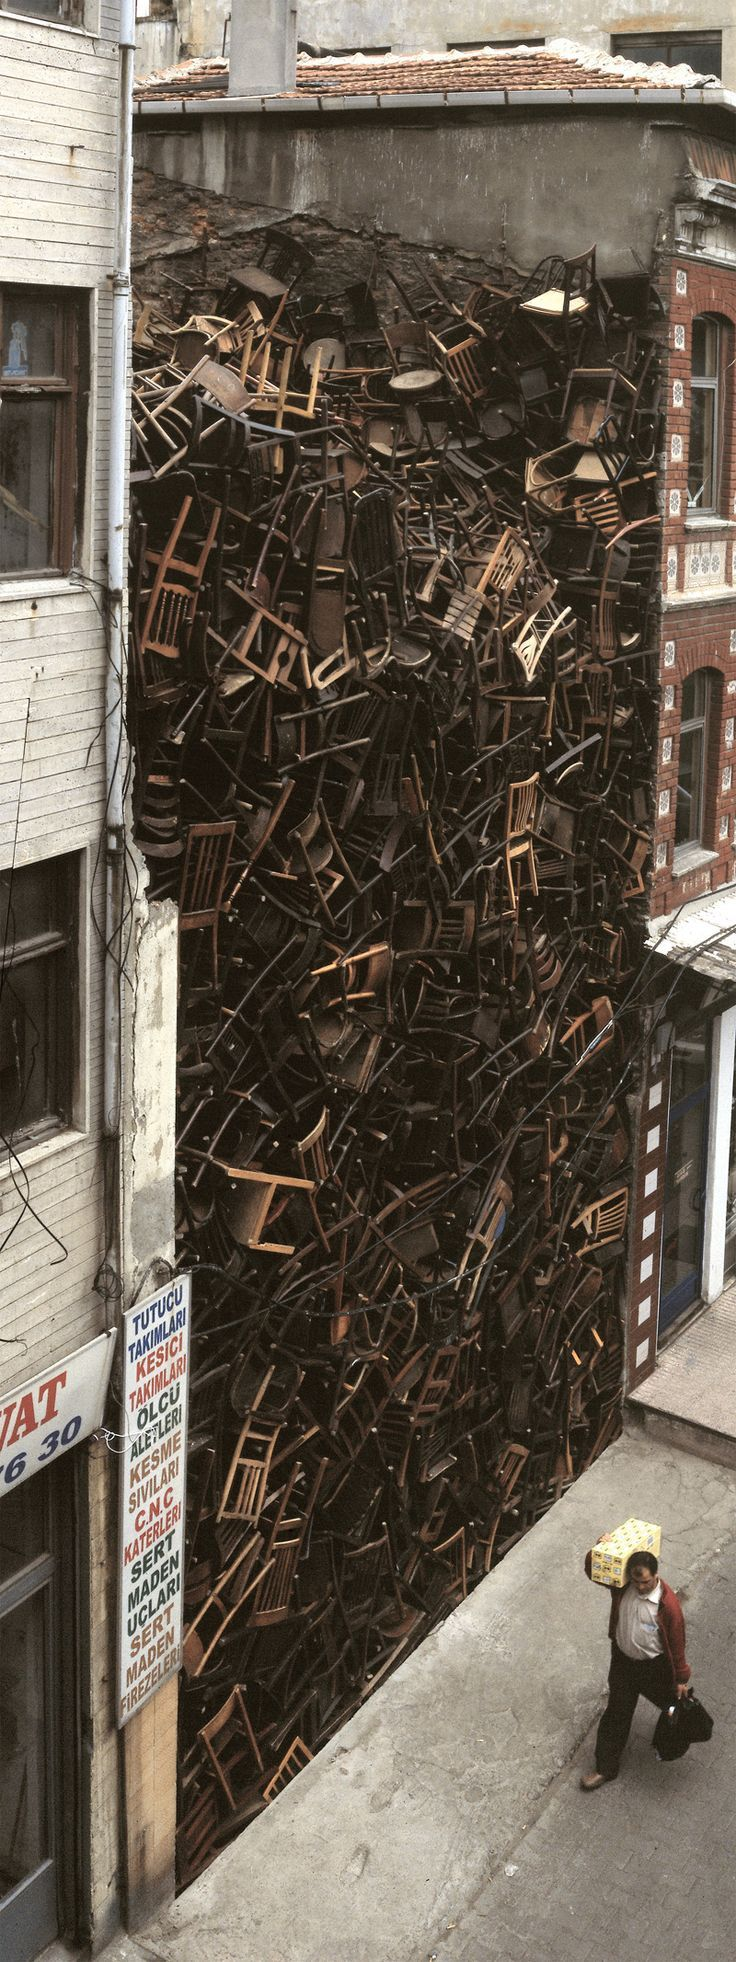 Doris Salcedo. 1,550 wooden chairs piled high between two buildings in central Istanbul. breathless (I can't find if this is still up, but I'd love to look for it.)